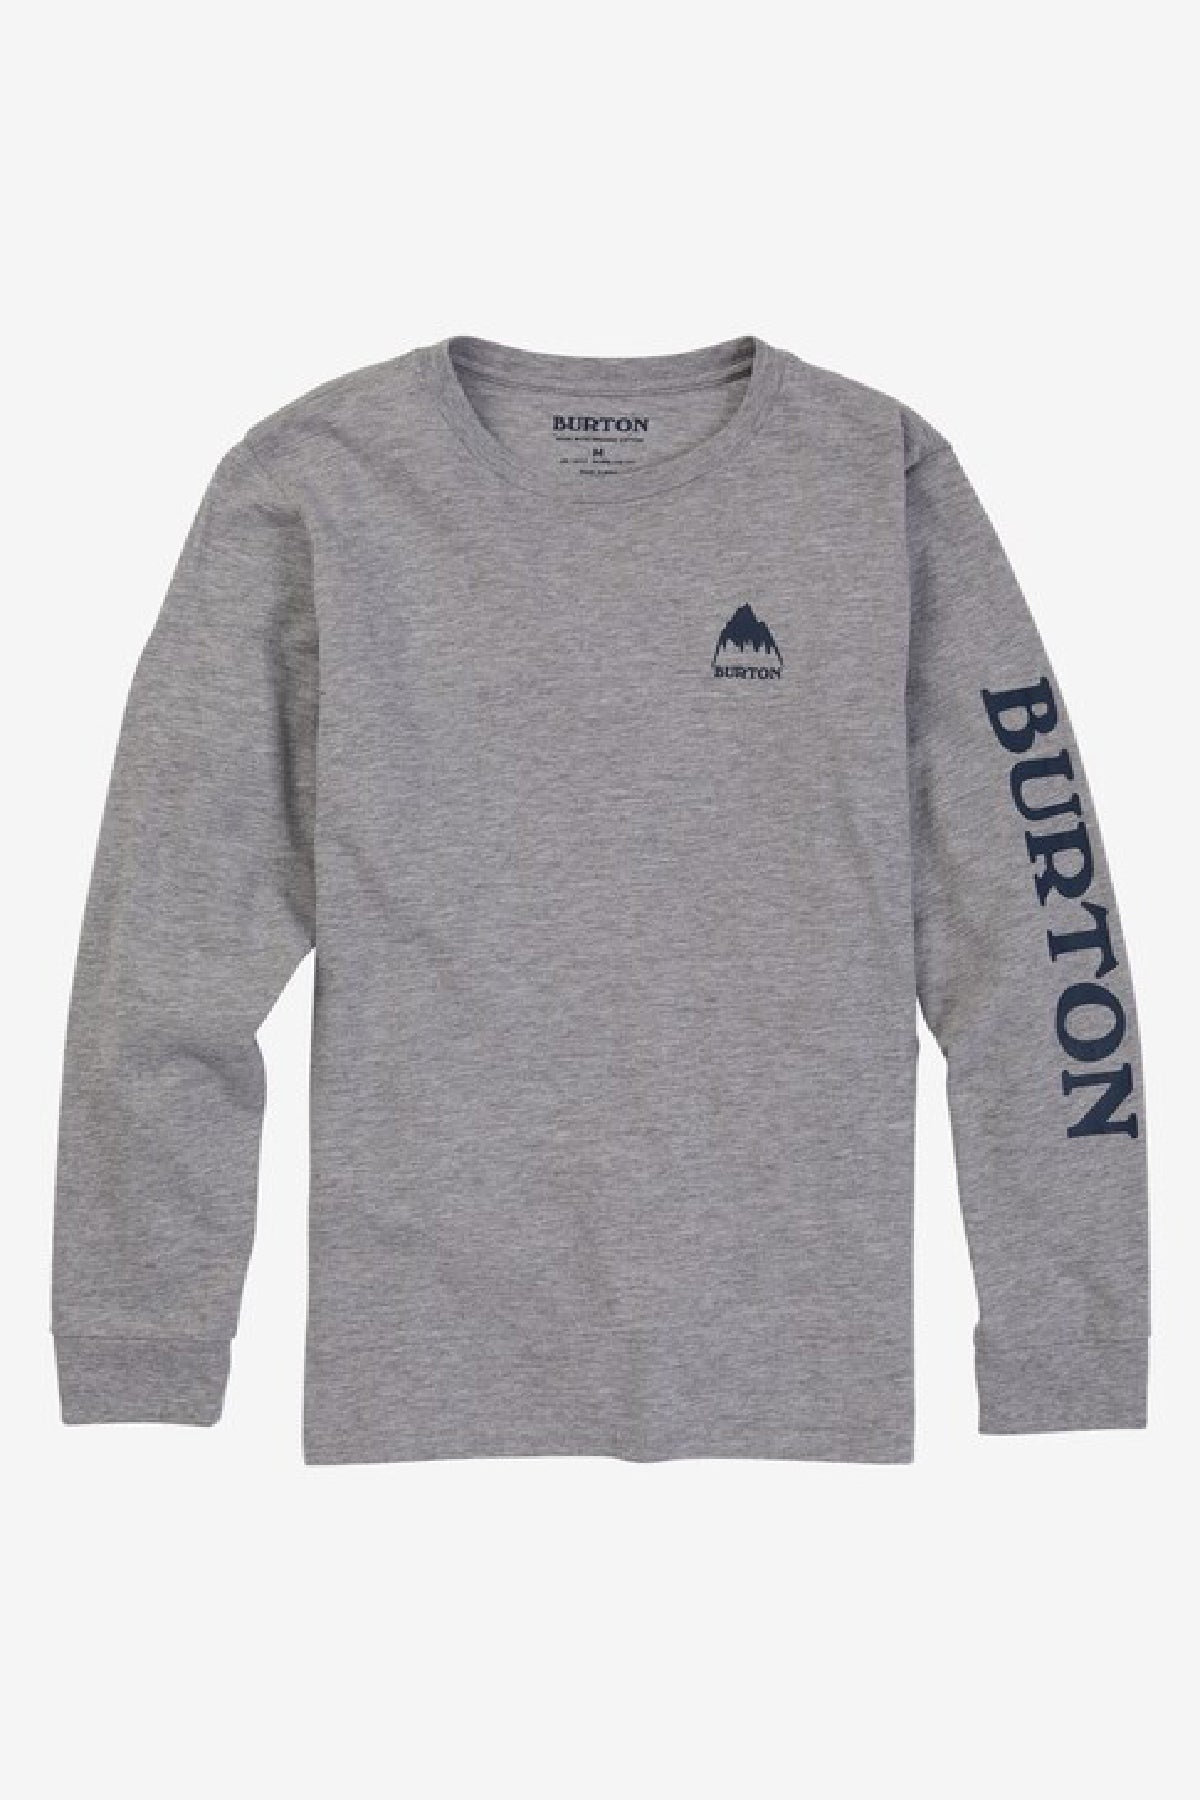 Burton Elite Long-Sleeve Kids T-Shirt - Gray Heather